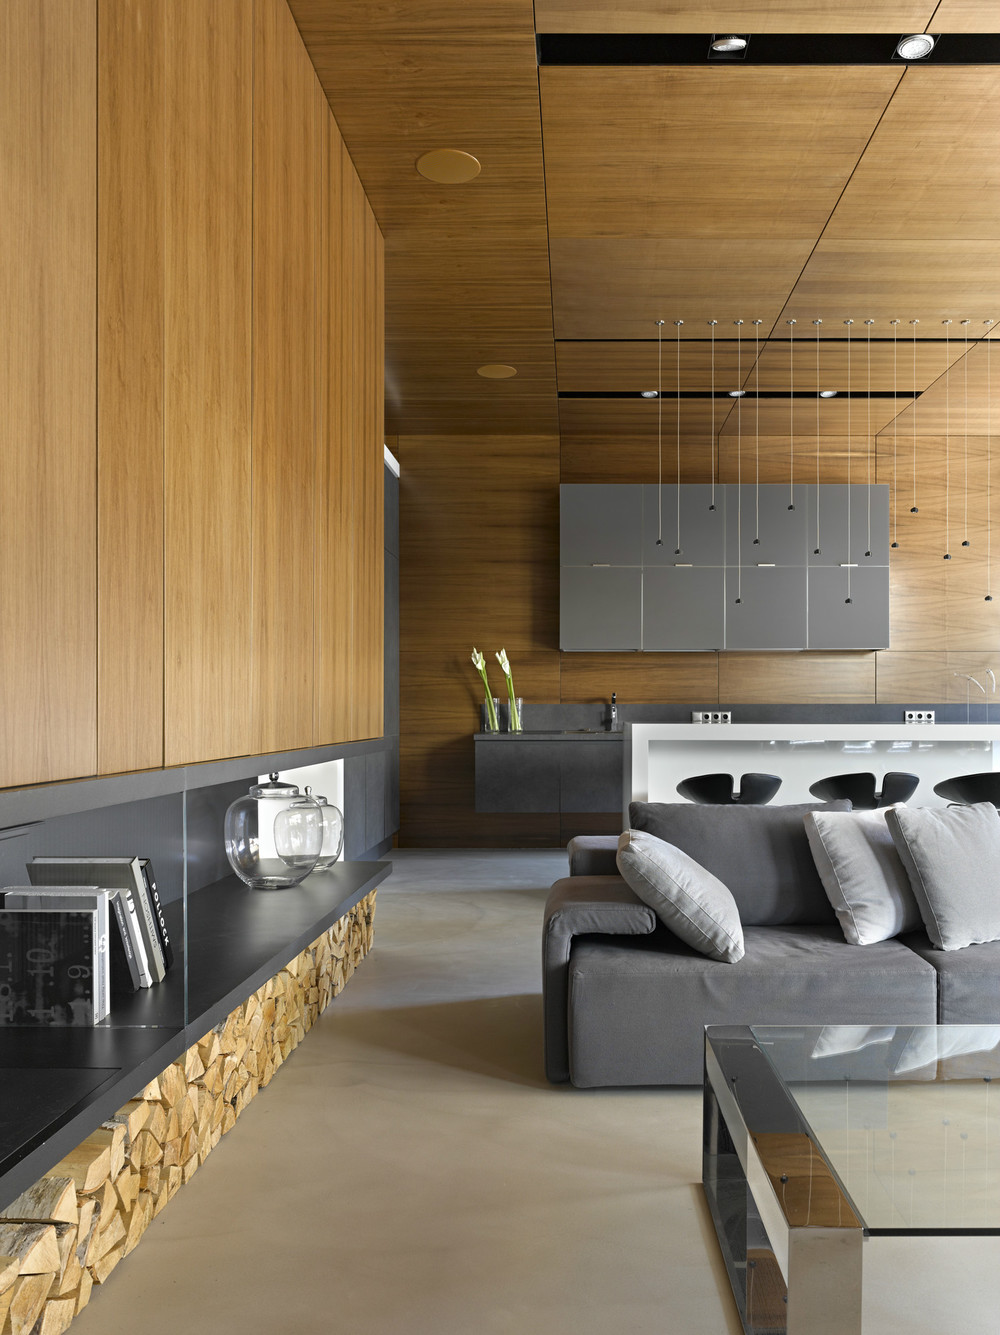 Simple Wall Paneling - Invisible doors turn a home into an artistic feat of design